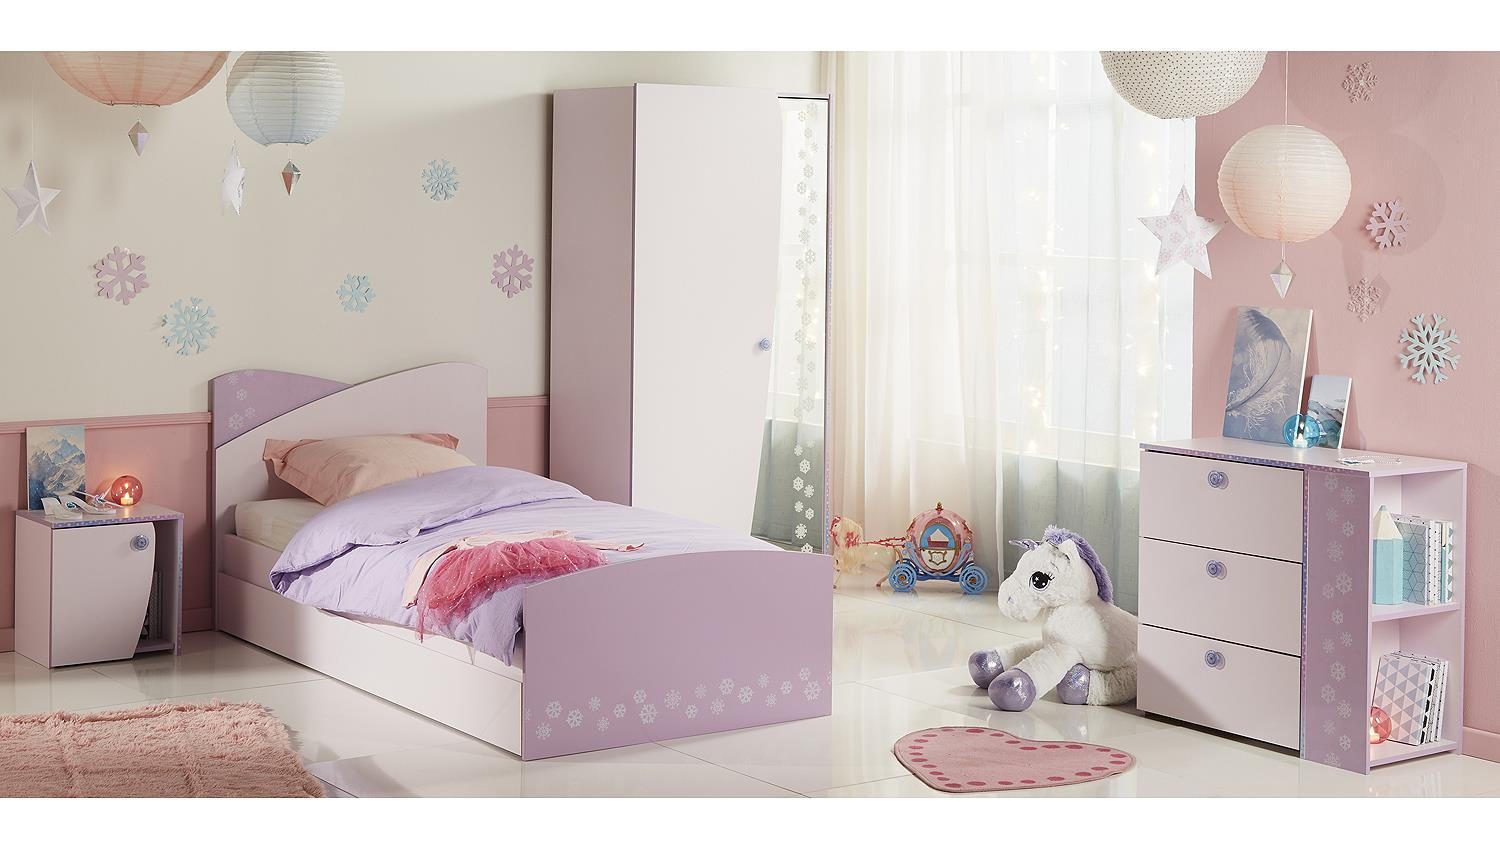 kinderzimmer streichen rosa lila raum und m beldesign inspiration. Black Bedroom Furniture Sets. Home Design Ideas